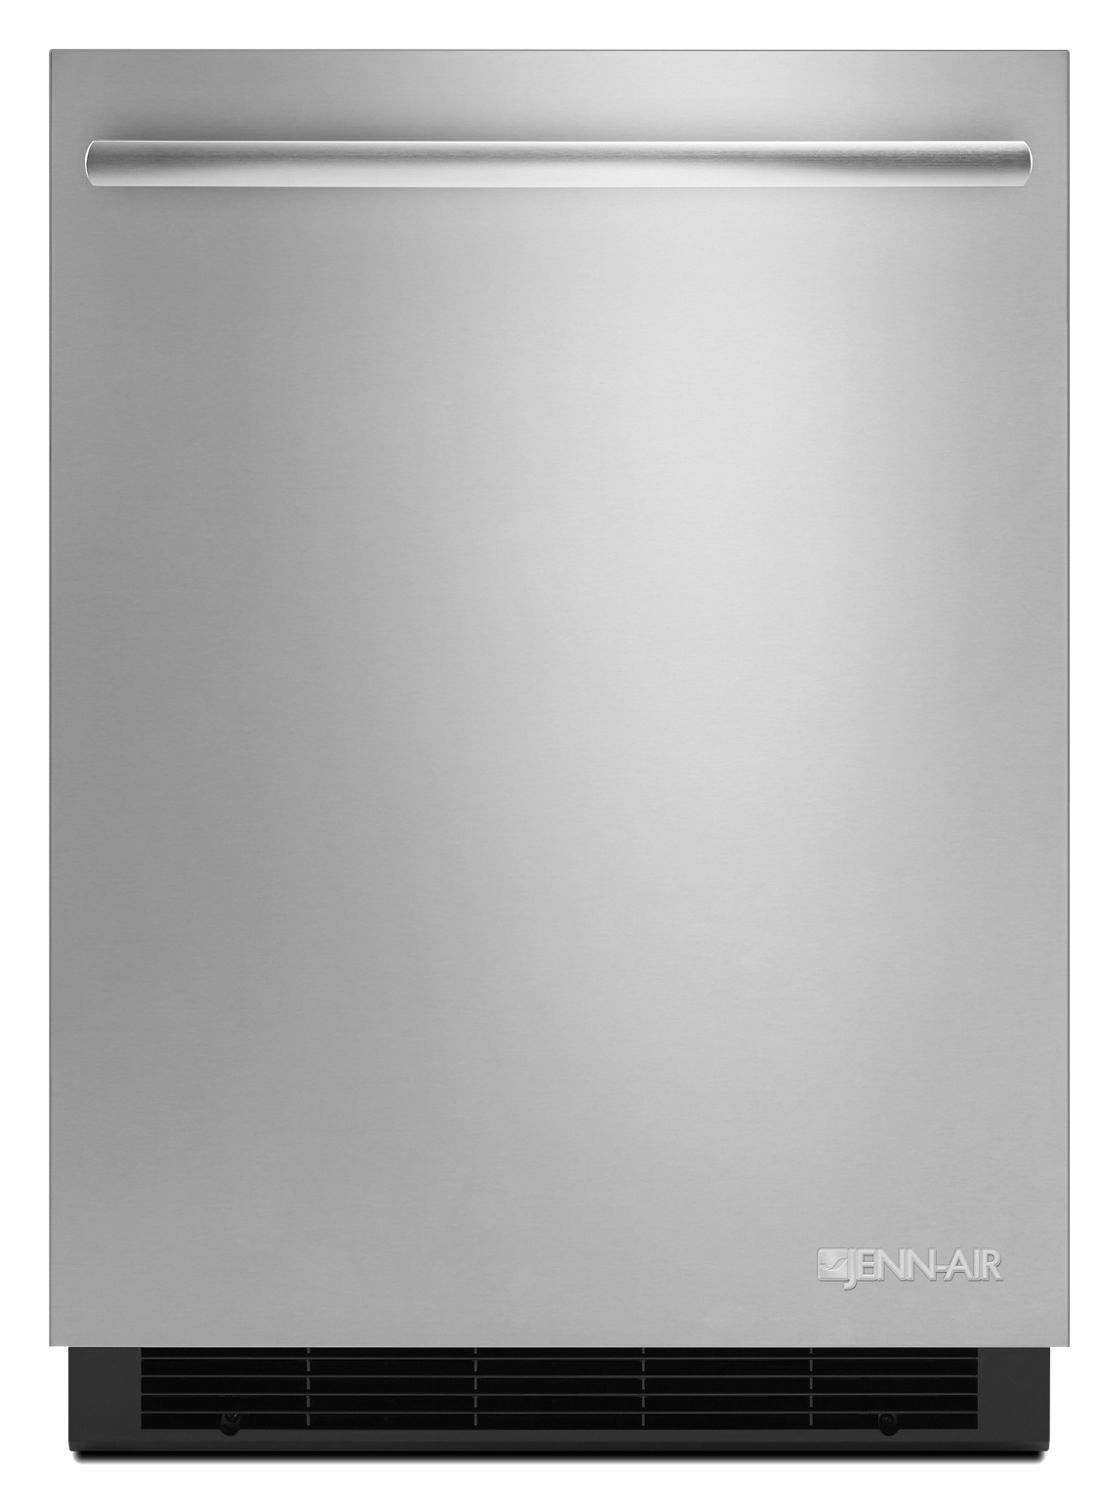 "JennAirEuro-Style 24"" Under Counter Refrigerator Stainless Steel"